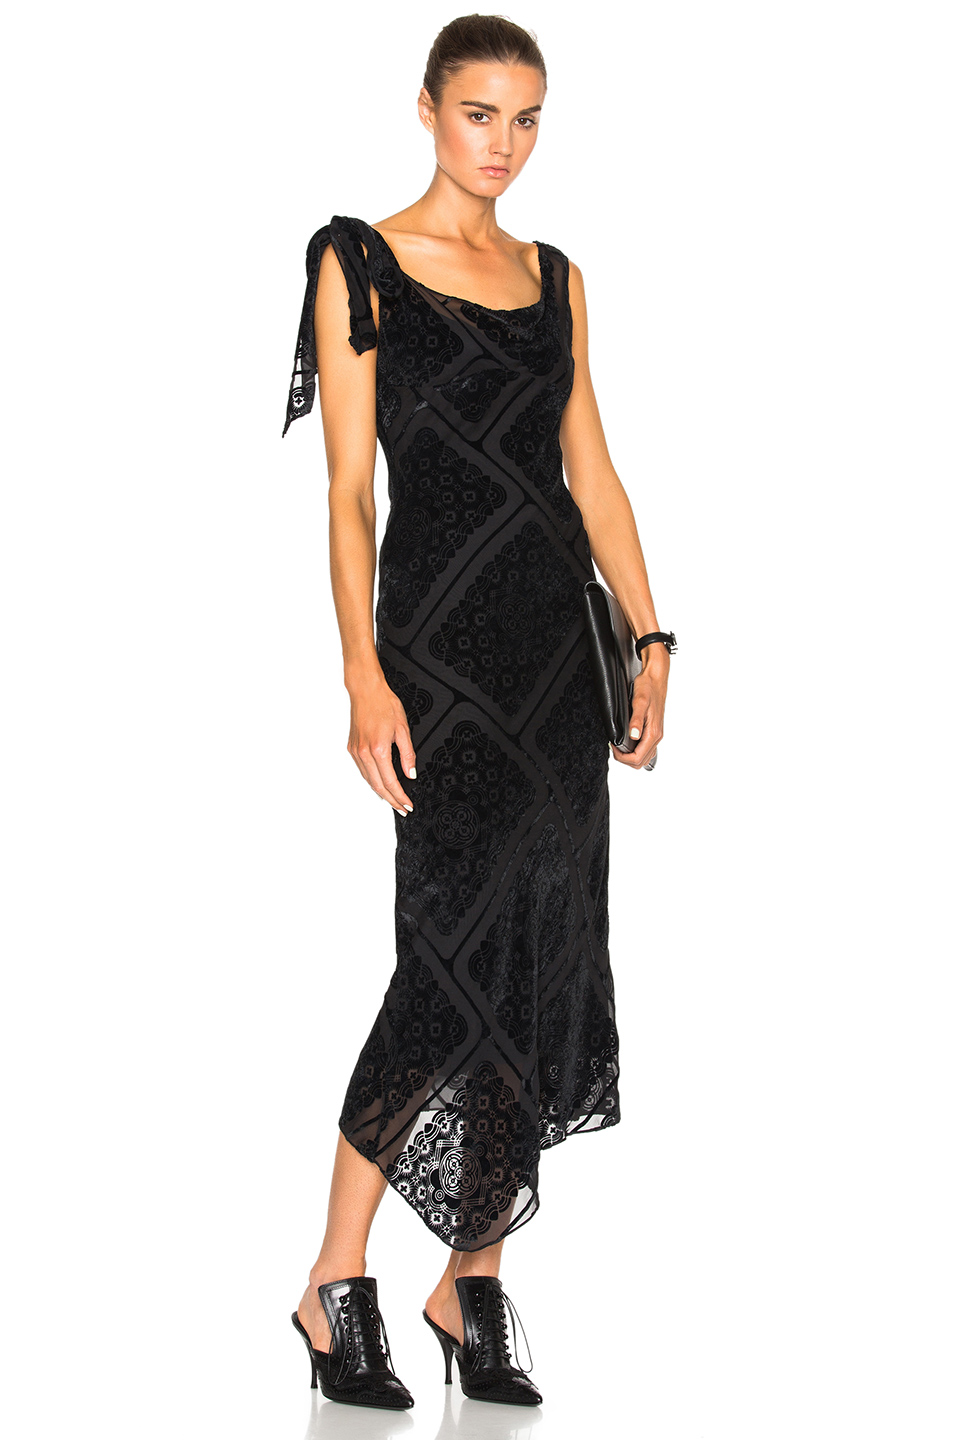 Maison Margiela Printed Devore Gown in Black